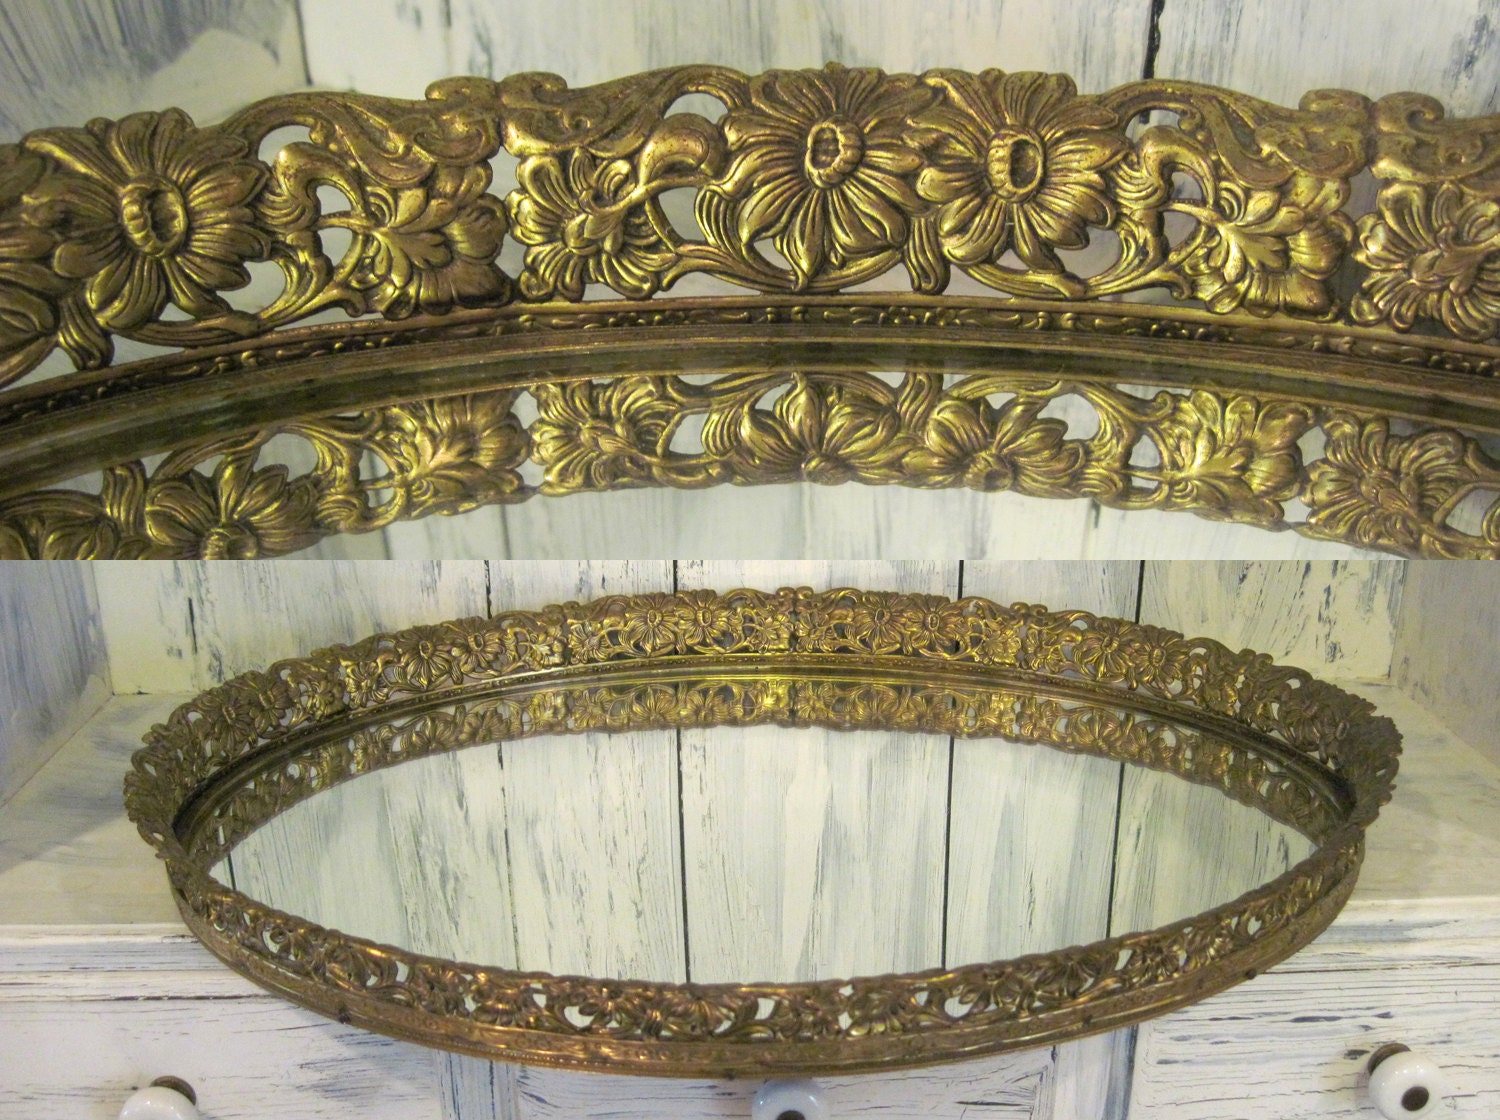 Large Round Gold Mirror: Vintage Rustic Golden Color Oval Large Vanity Mirror Tray